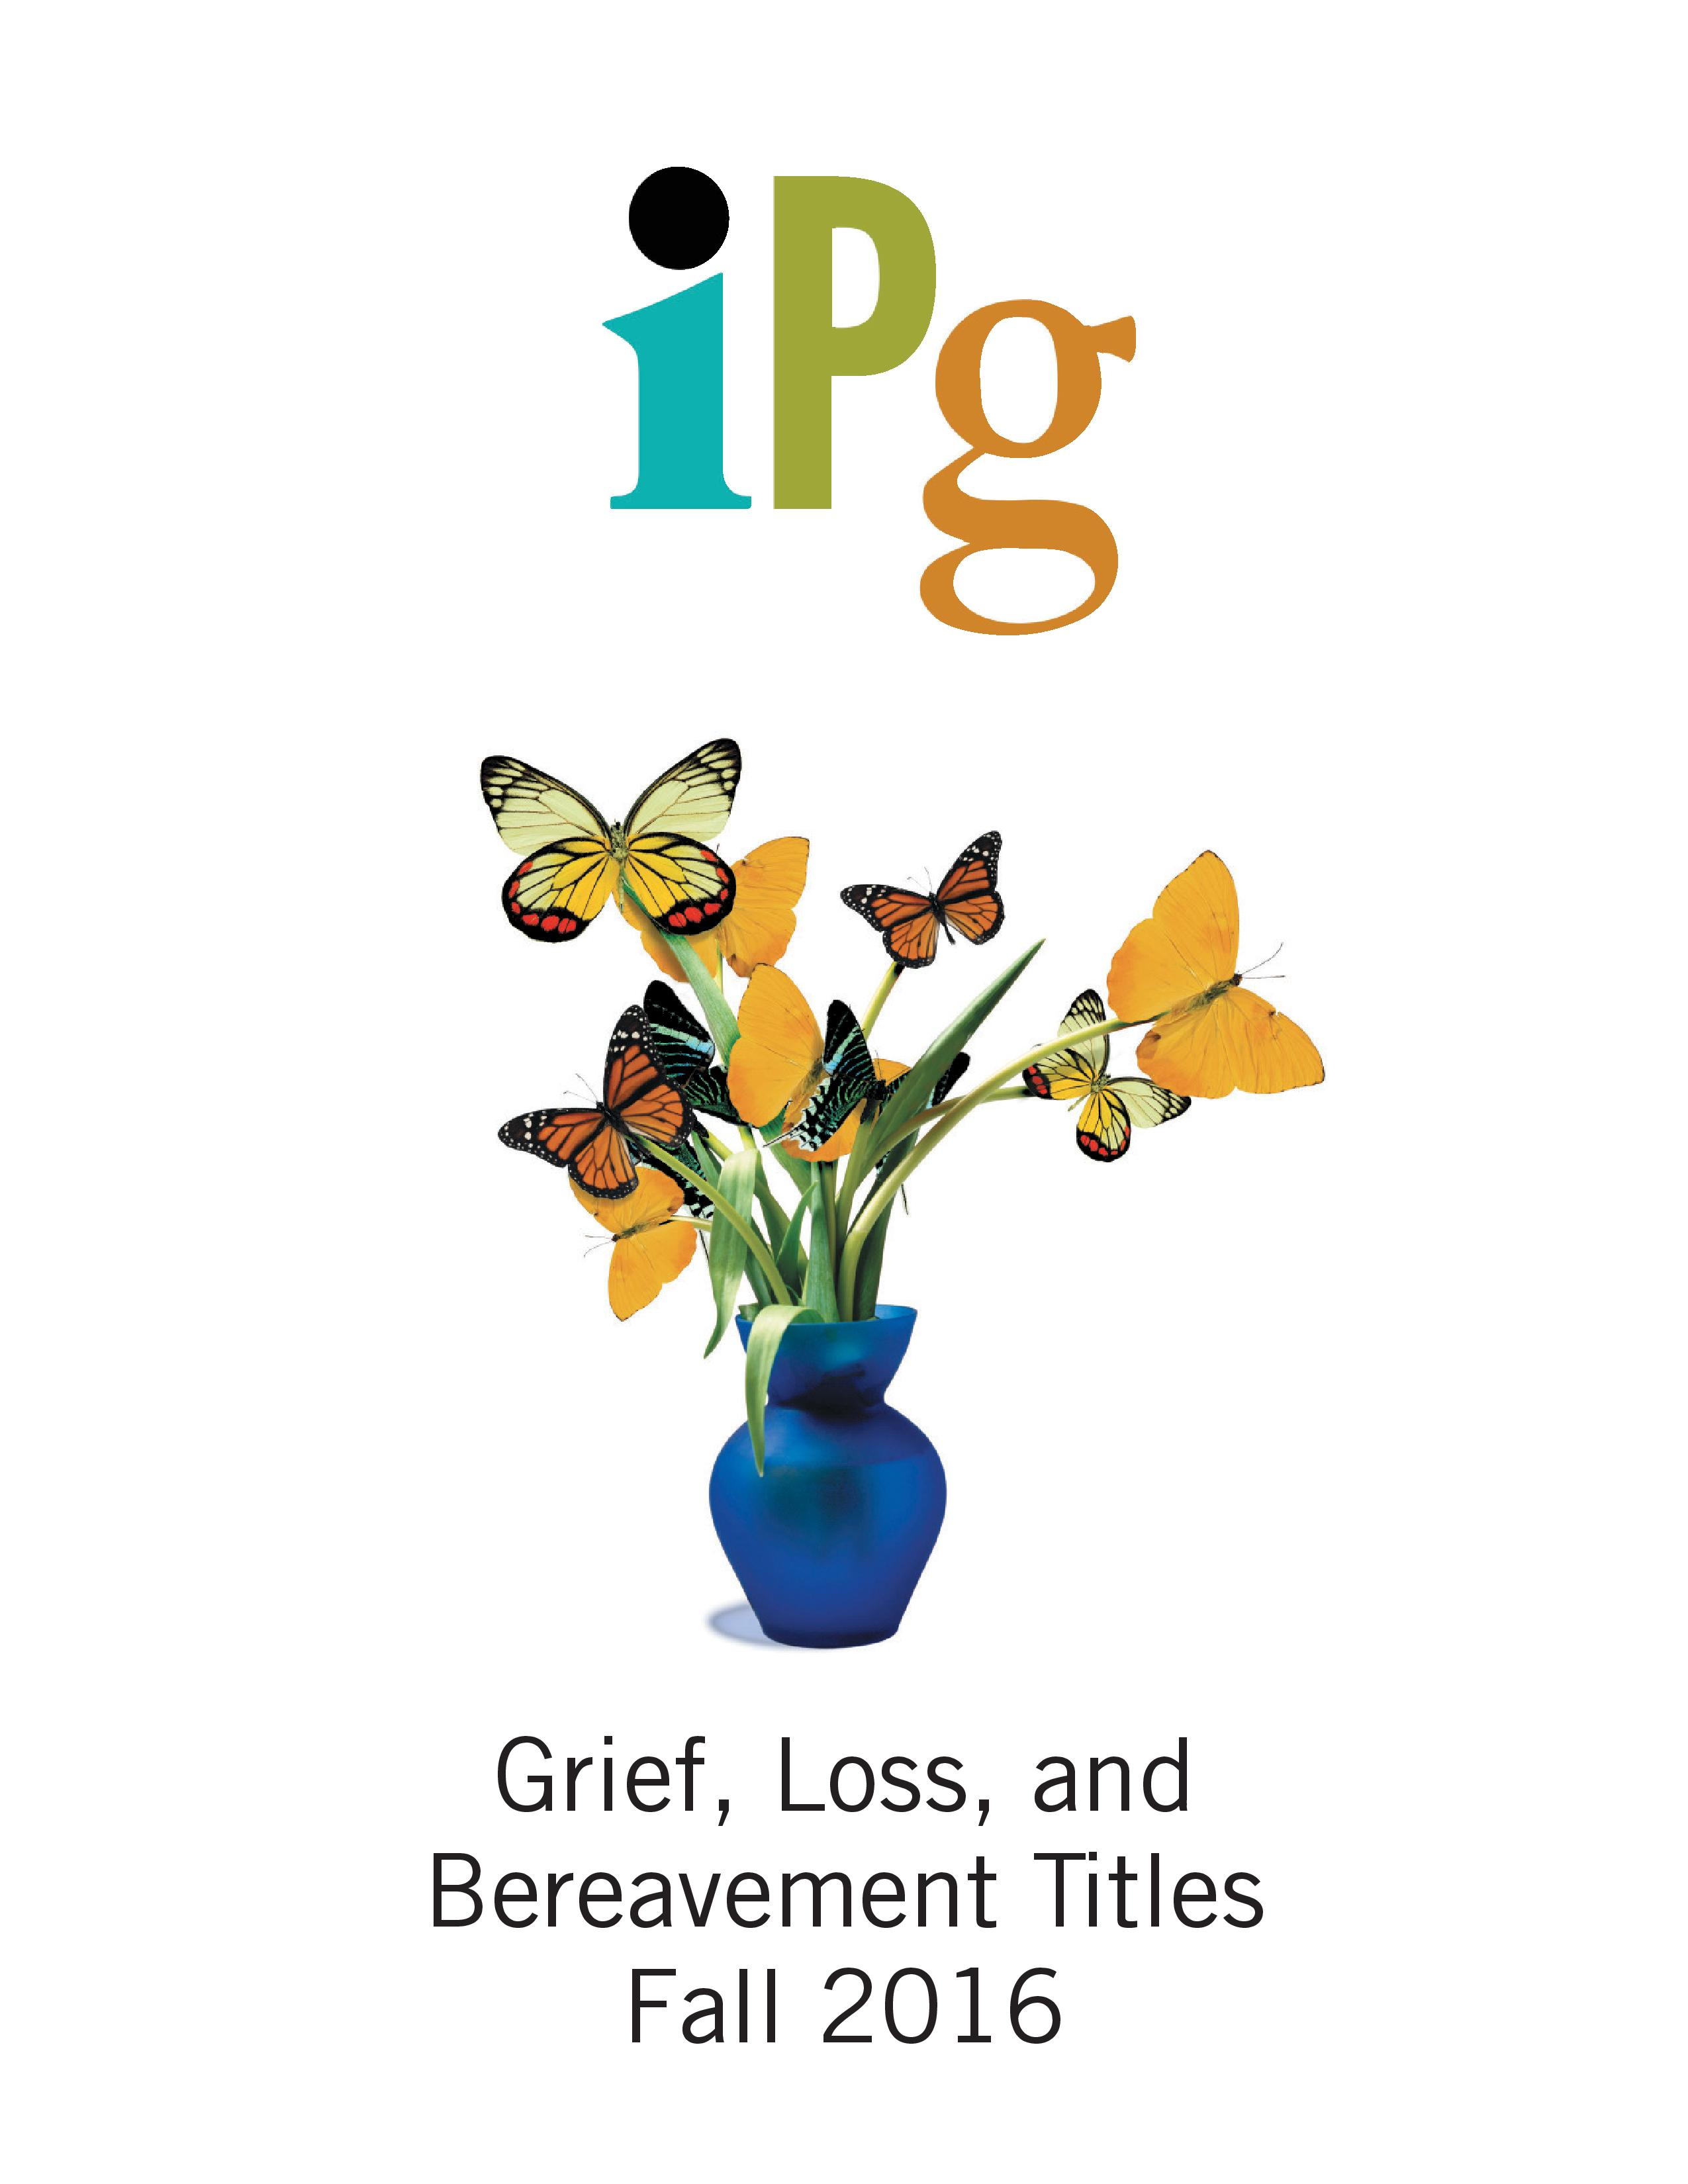 Grief, Loss, and Bereavement Titles